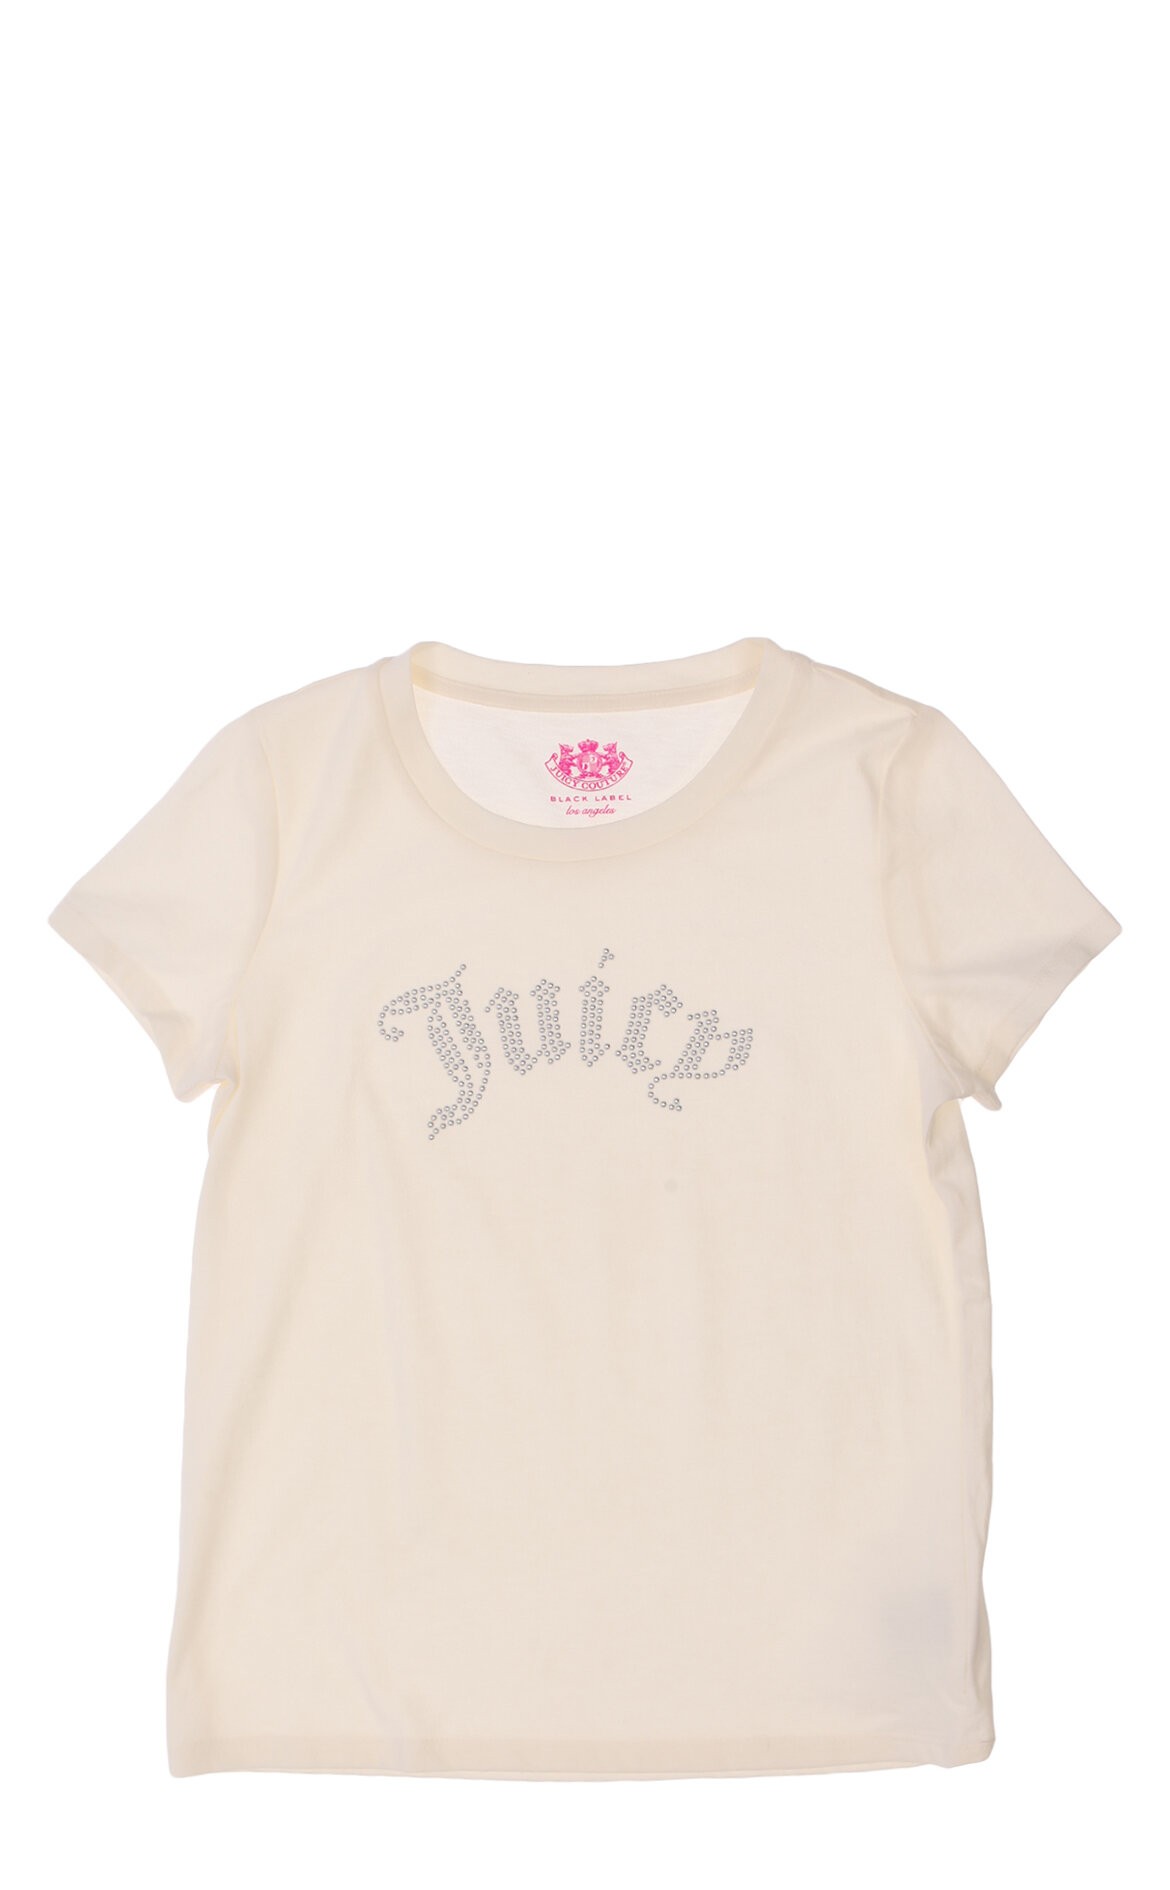 Juicy Couture-Juicy Couture İşleme Detaylı Krem T-Shirt